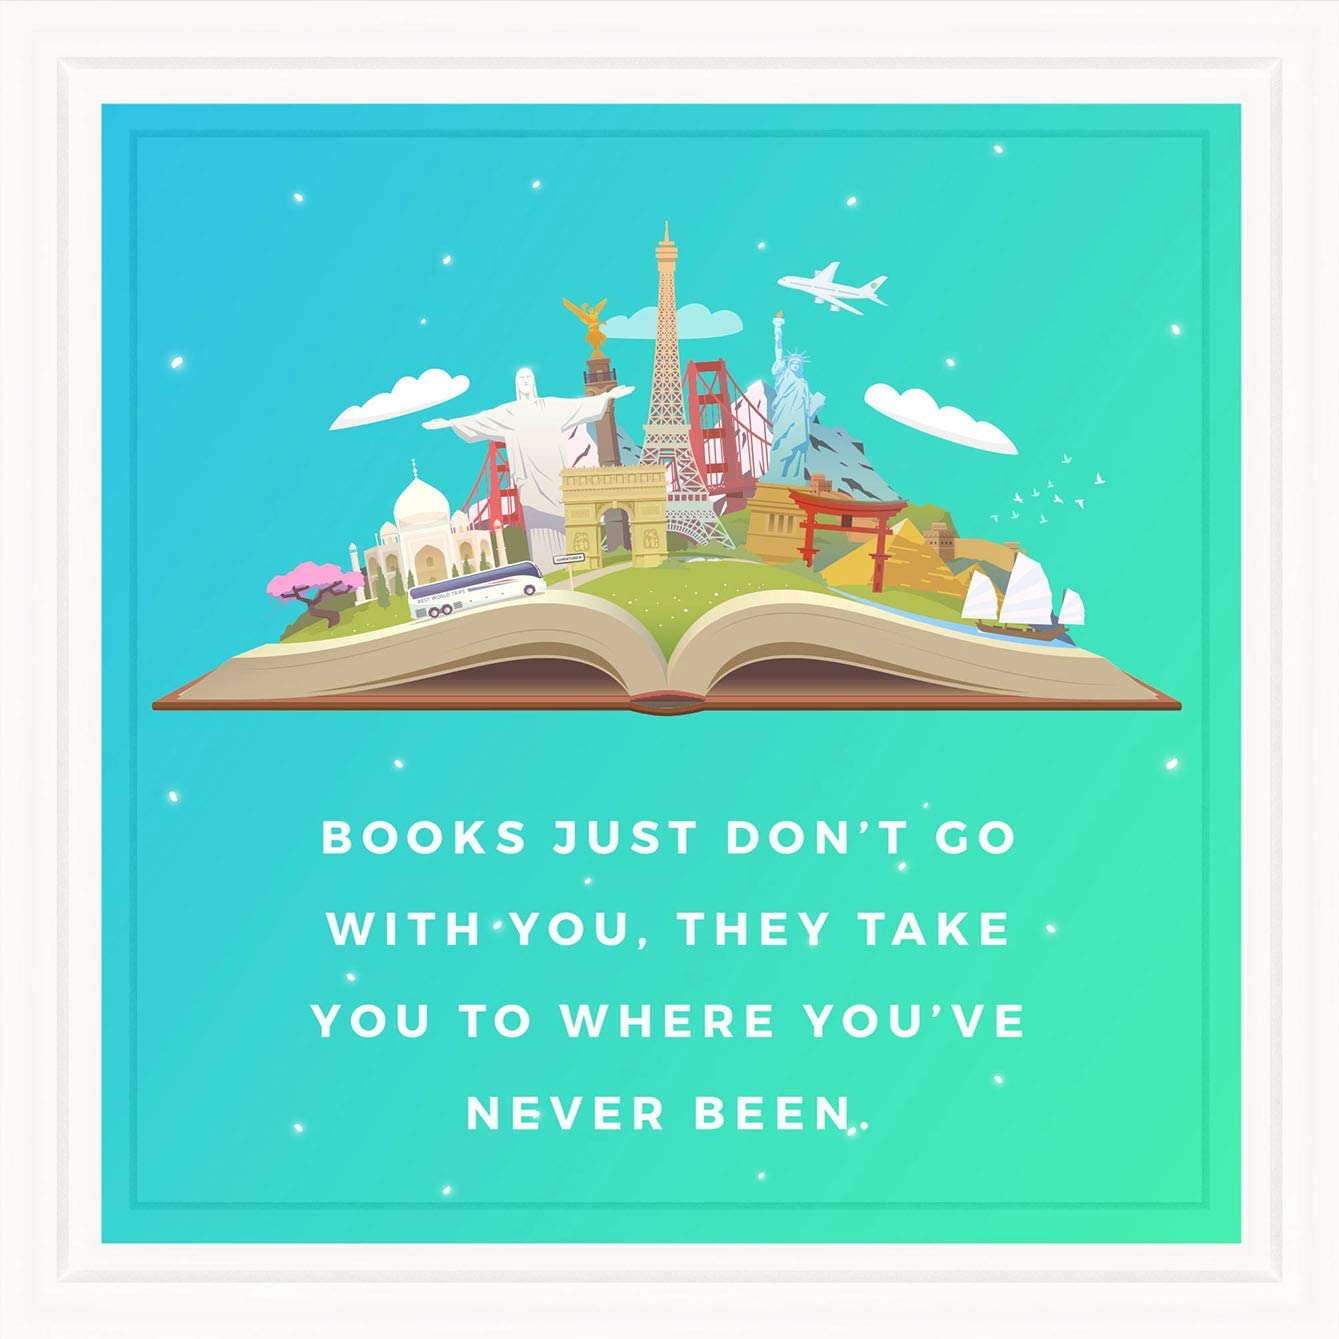 Gifts for Book Lovers   Gift Ideas For Readers   Reading Nook Decor  Bookish Items   Gifts For Writers  Bookshelf Decorations   Librarian Gifts  Book Club Gifts   Library Wall Art